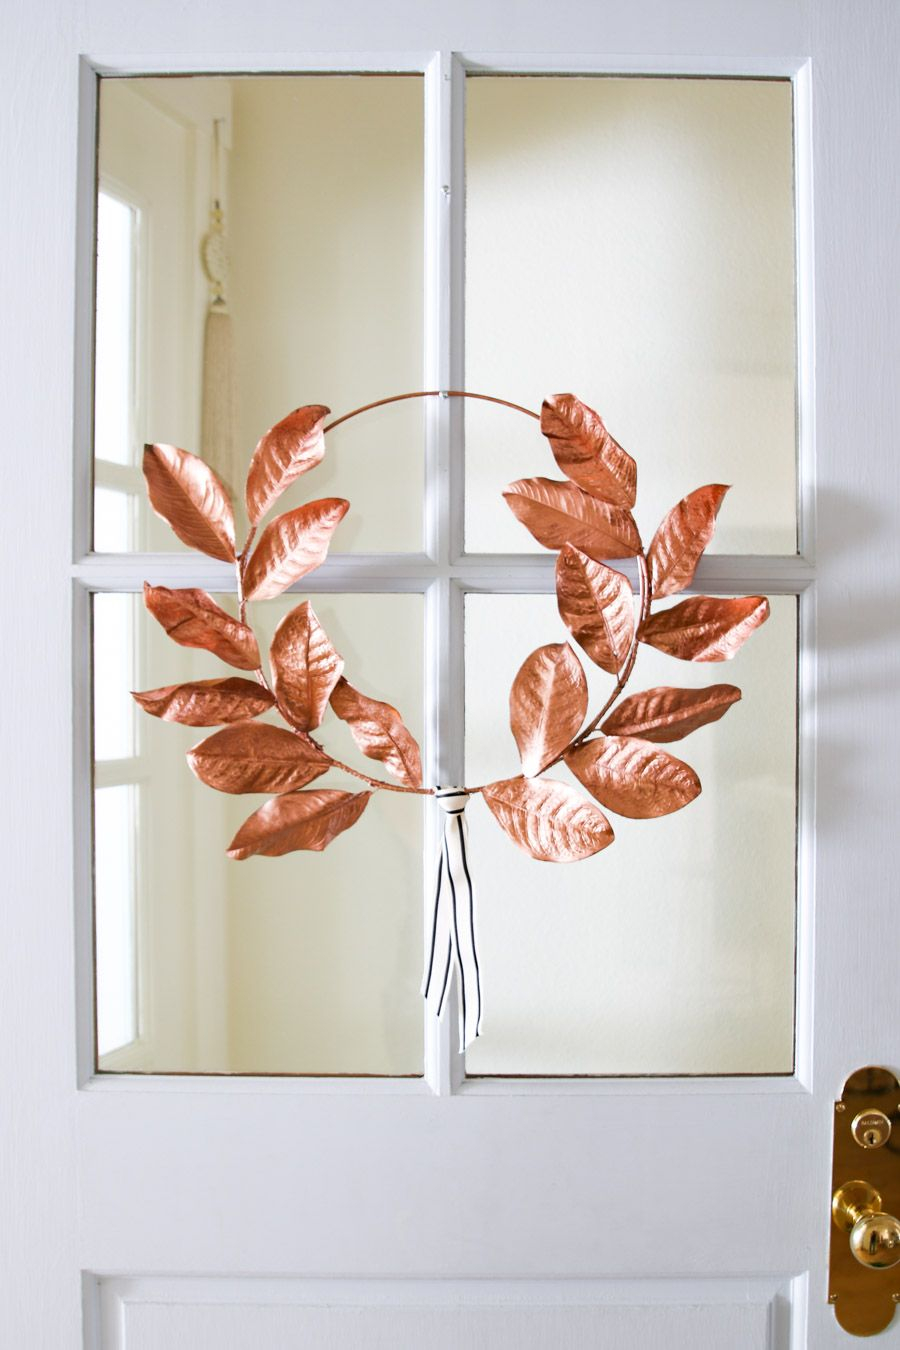 Minimalist rose gold wreath DIY Rose Gold Christmas Décor Projects To Bring Glam And Shine To Your Holidays